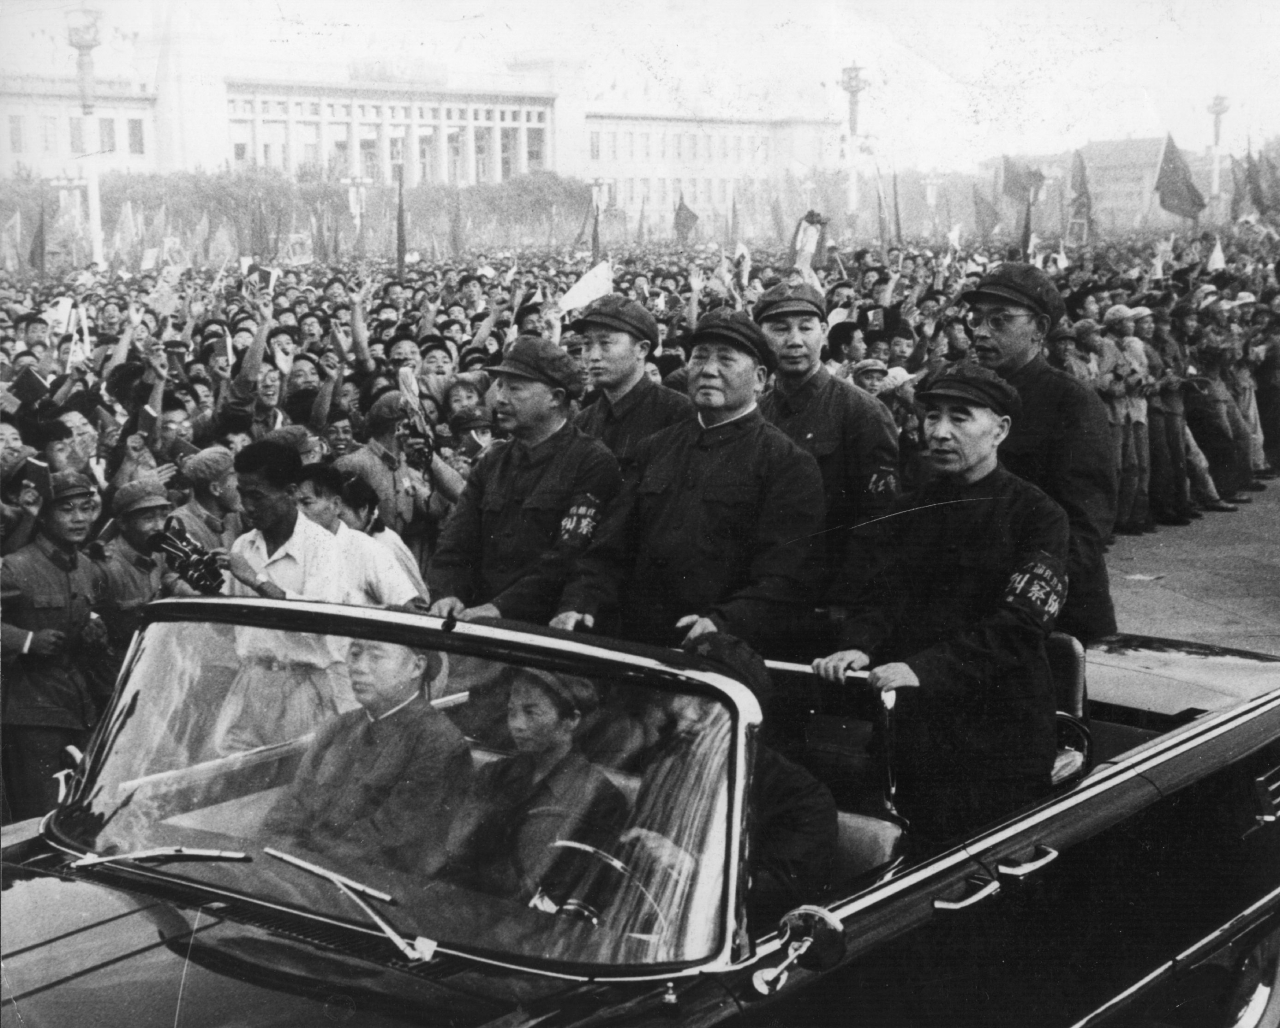 Chinese leader Mao Tse-tung (1893-1976), accompanied by his second-in-command Lin Biao (1907-1971), passes along the ranks of revolutionaries during a rally in Tiananmen Square, Peking (Beijing), 1966. (Keystone/Getty Images)